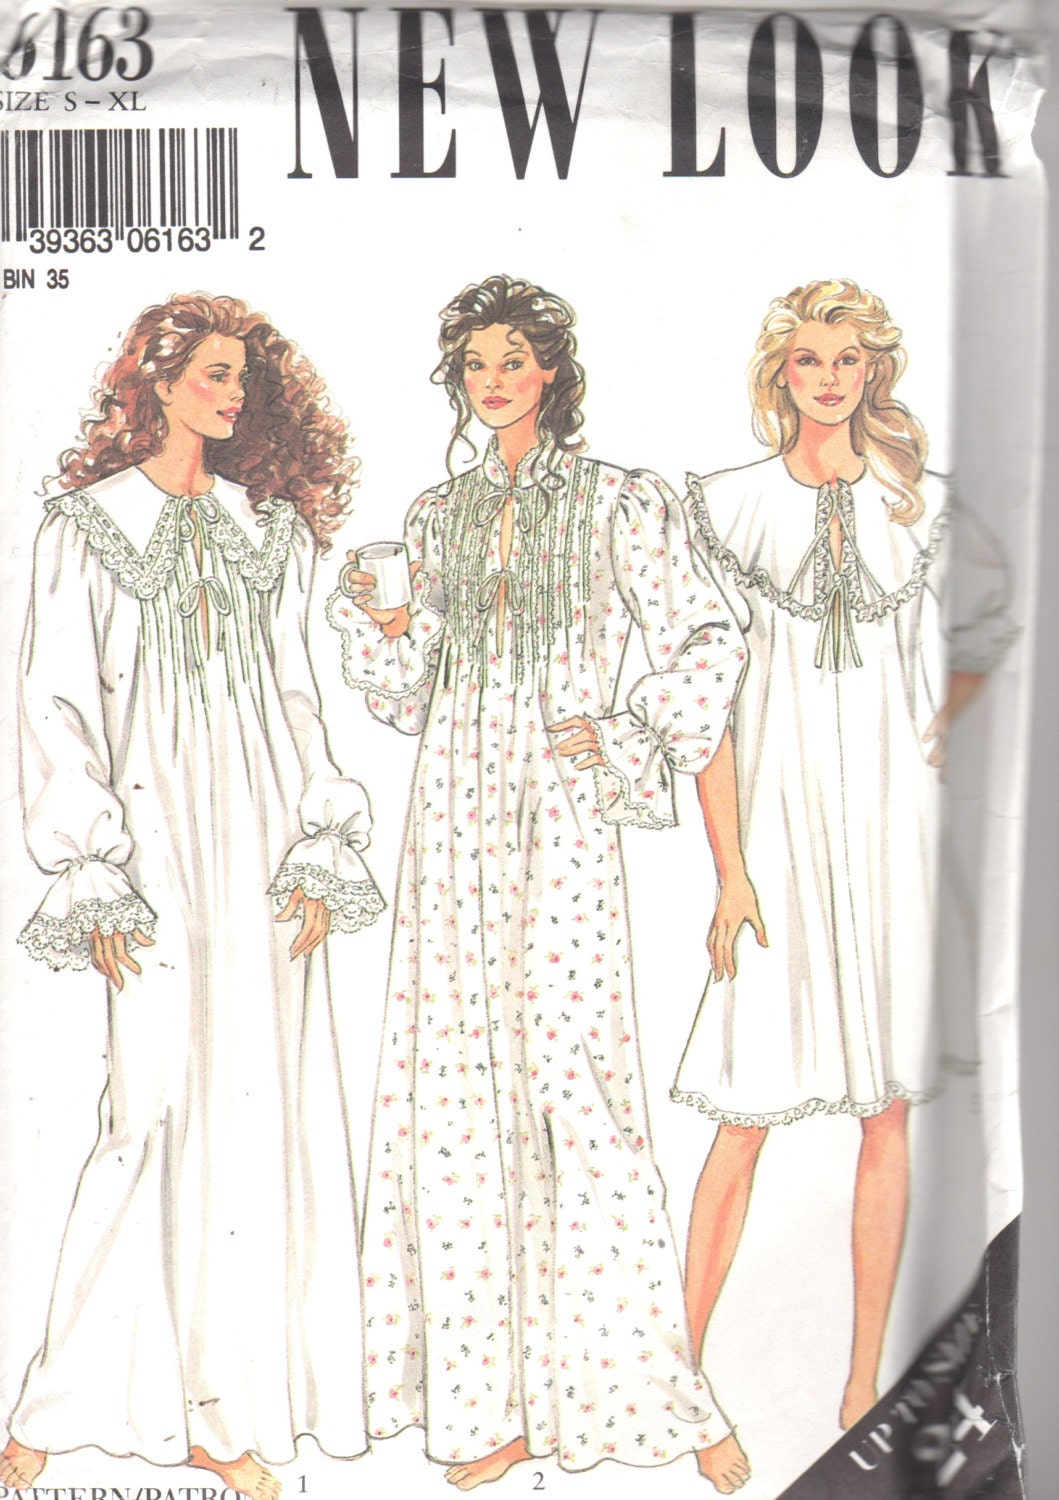 new look 6163 misses victorian style nightgown pattern tucked